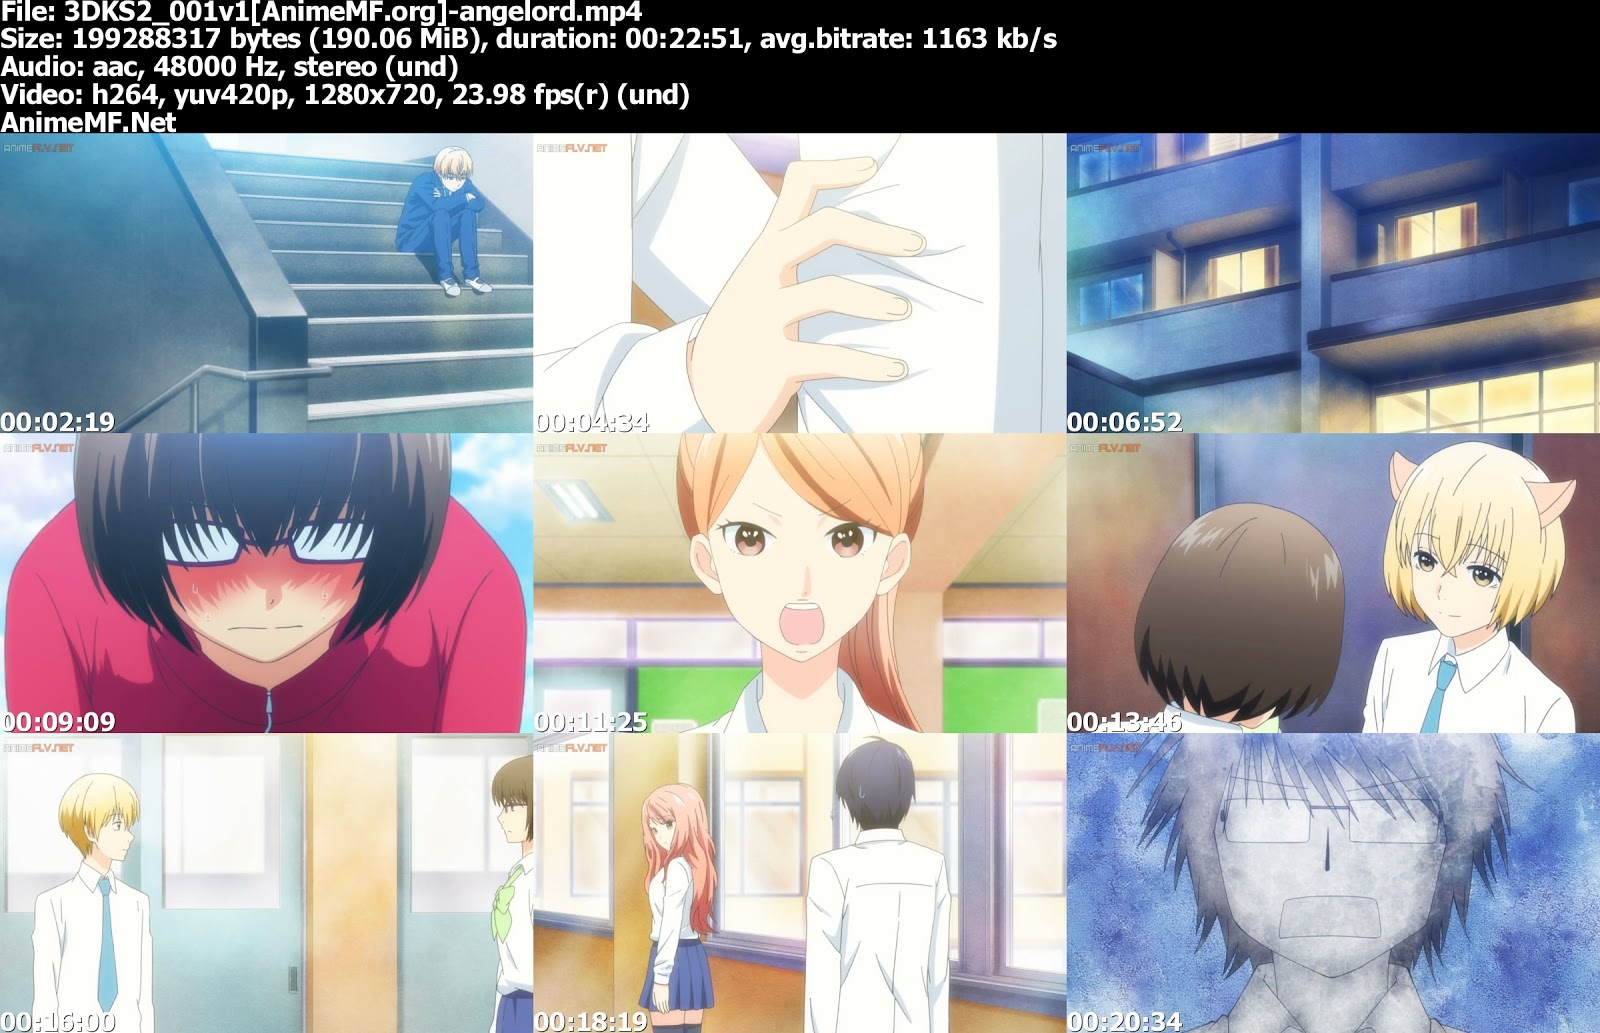 3D Kanojo: 2nd Season